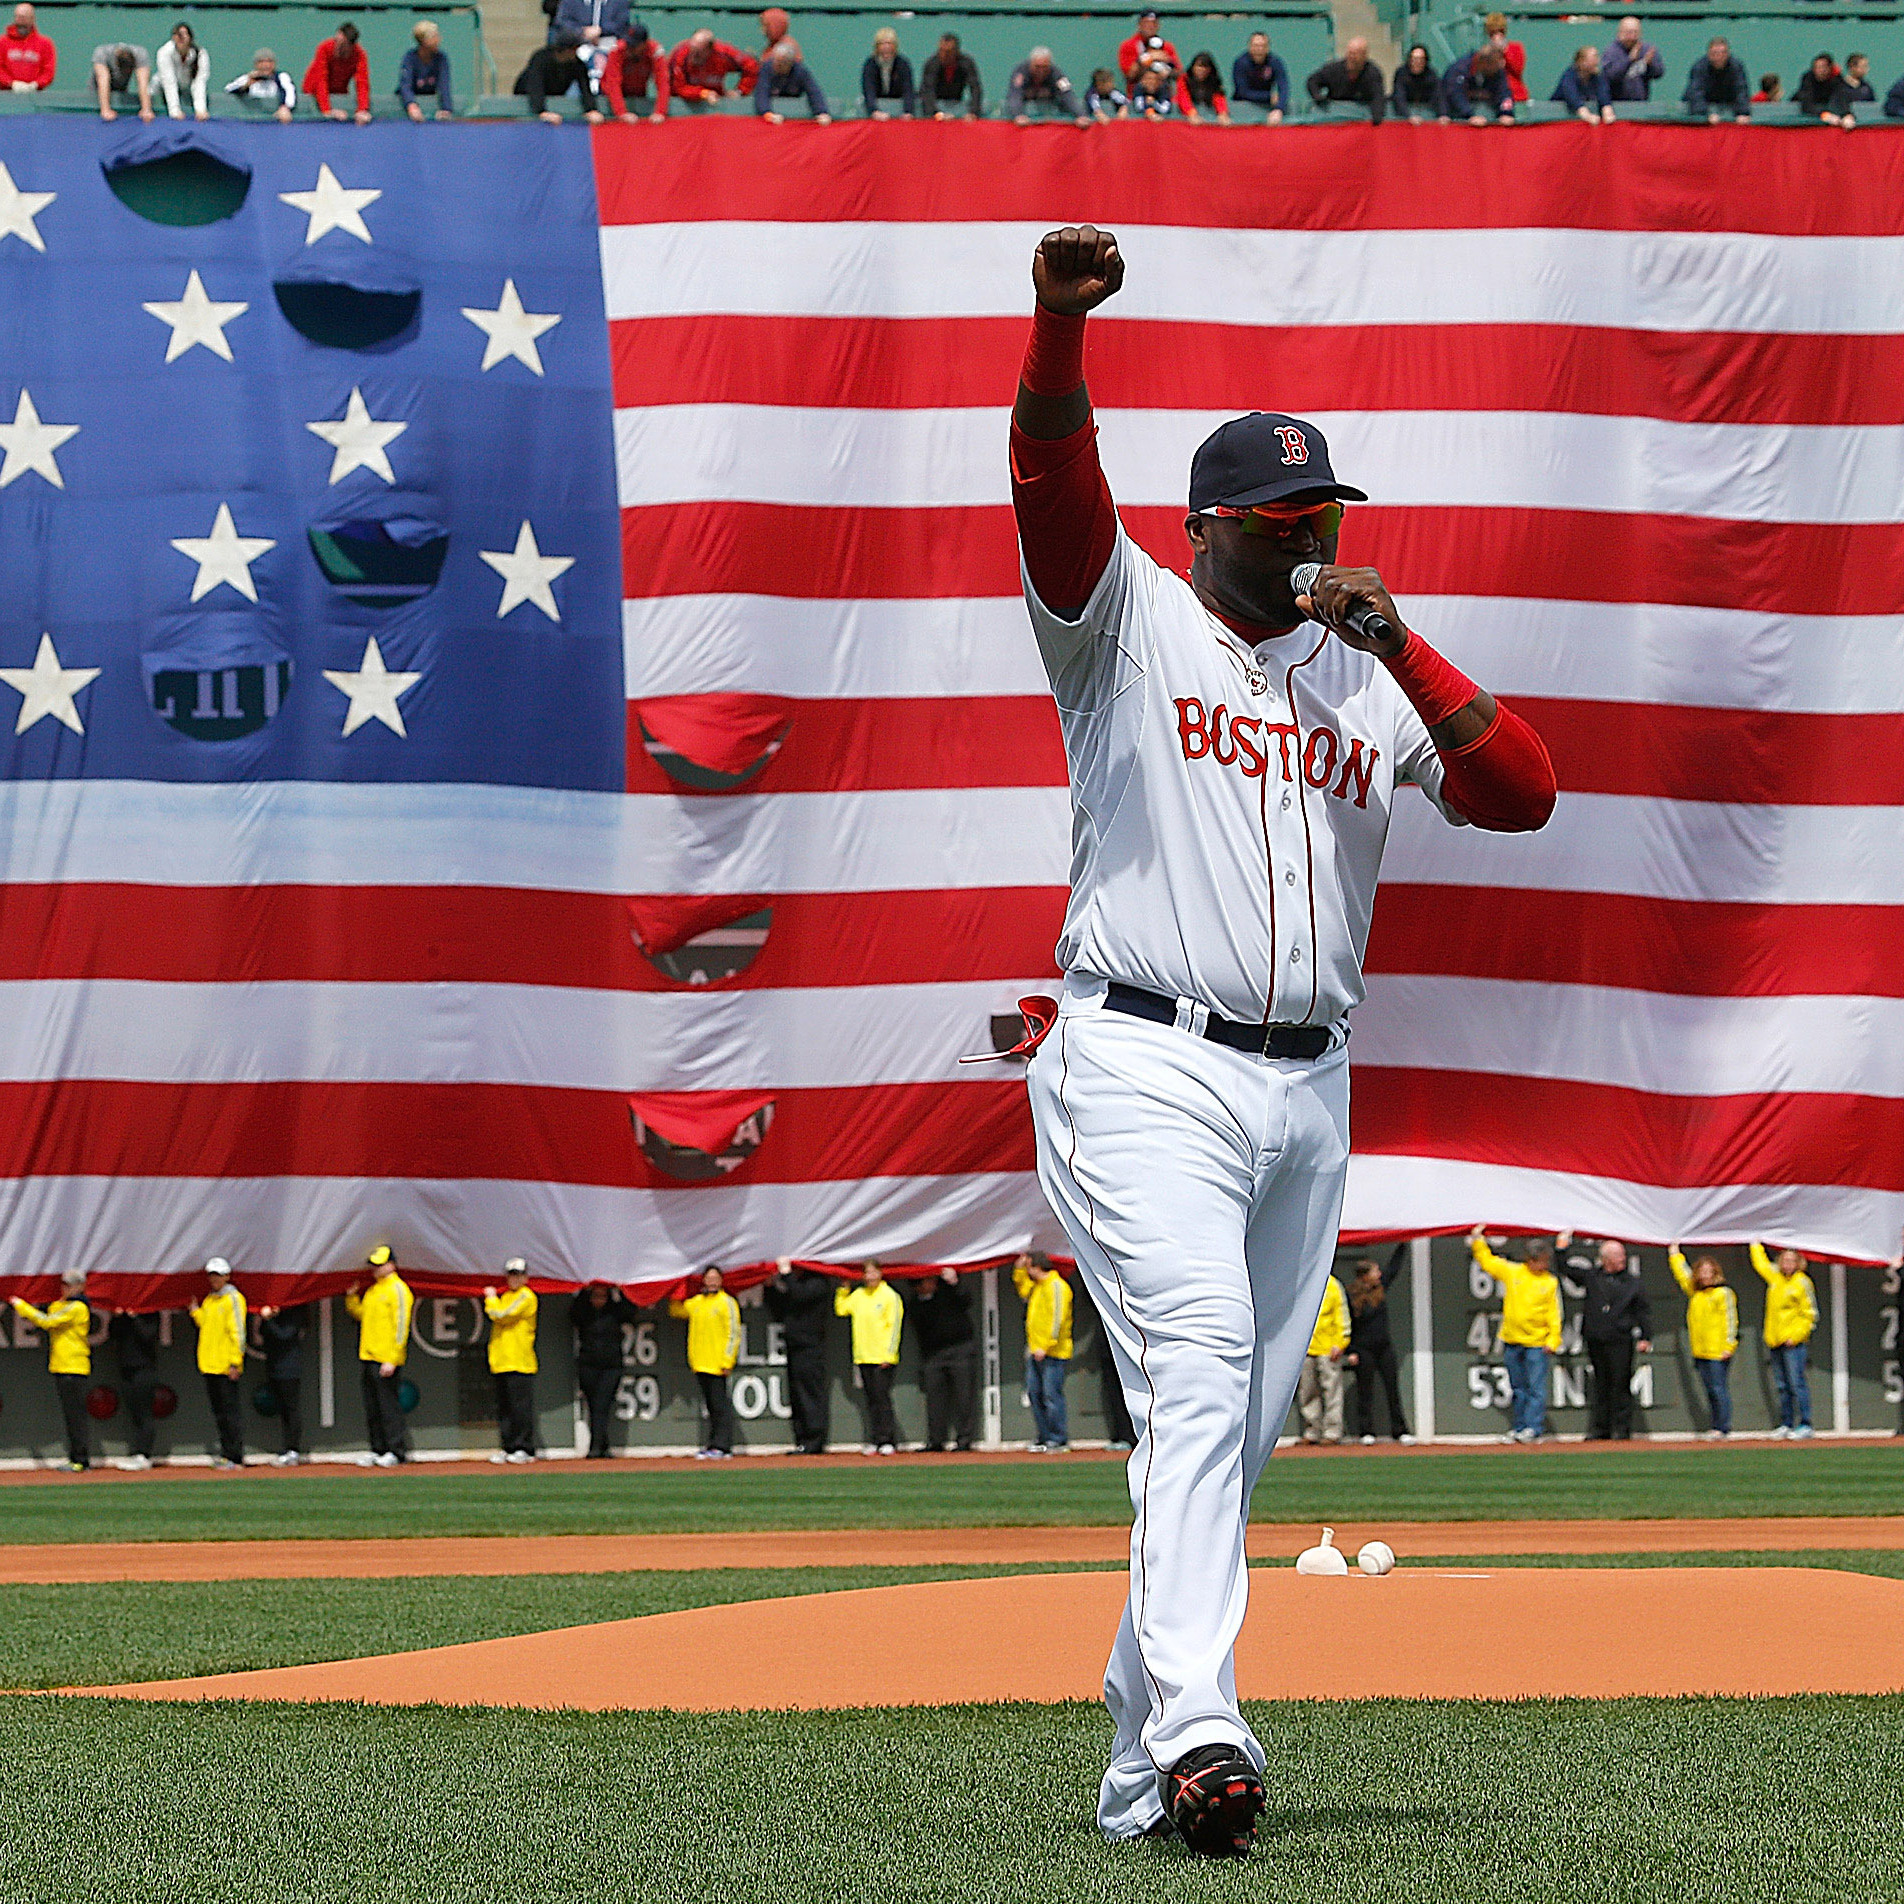 David Ortiz of the Boston Red Sox speaks during a pre-game ceremony in honor of the victims of the marathon bombings at Fenway Park on Saturday.